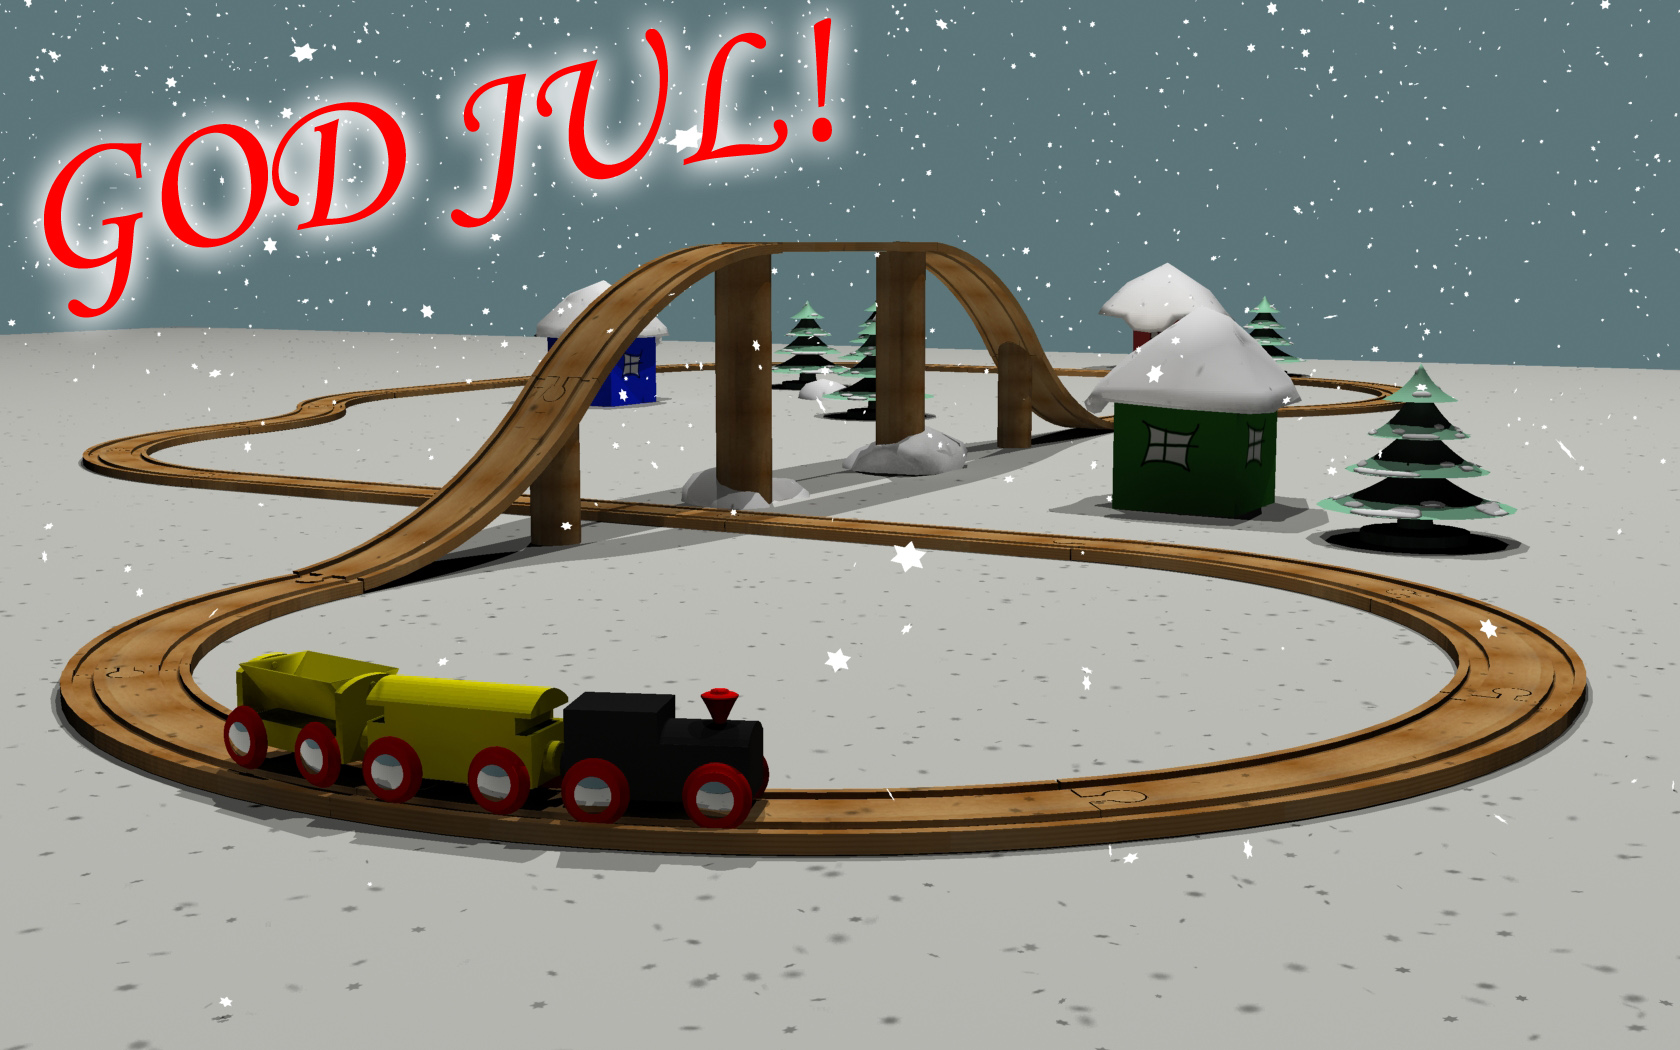 "A Christmas card image with a Brio wood toy train on tracks, surrounded by some simple buildings and trees covered in snow. It is also currently snowing and the word ""God Jul"" are written in the top left corner. ""God Jul"" translates to Merry Christmas"